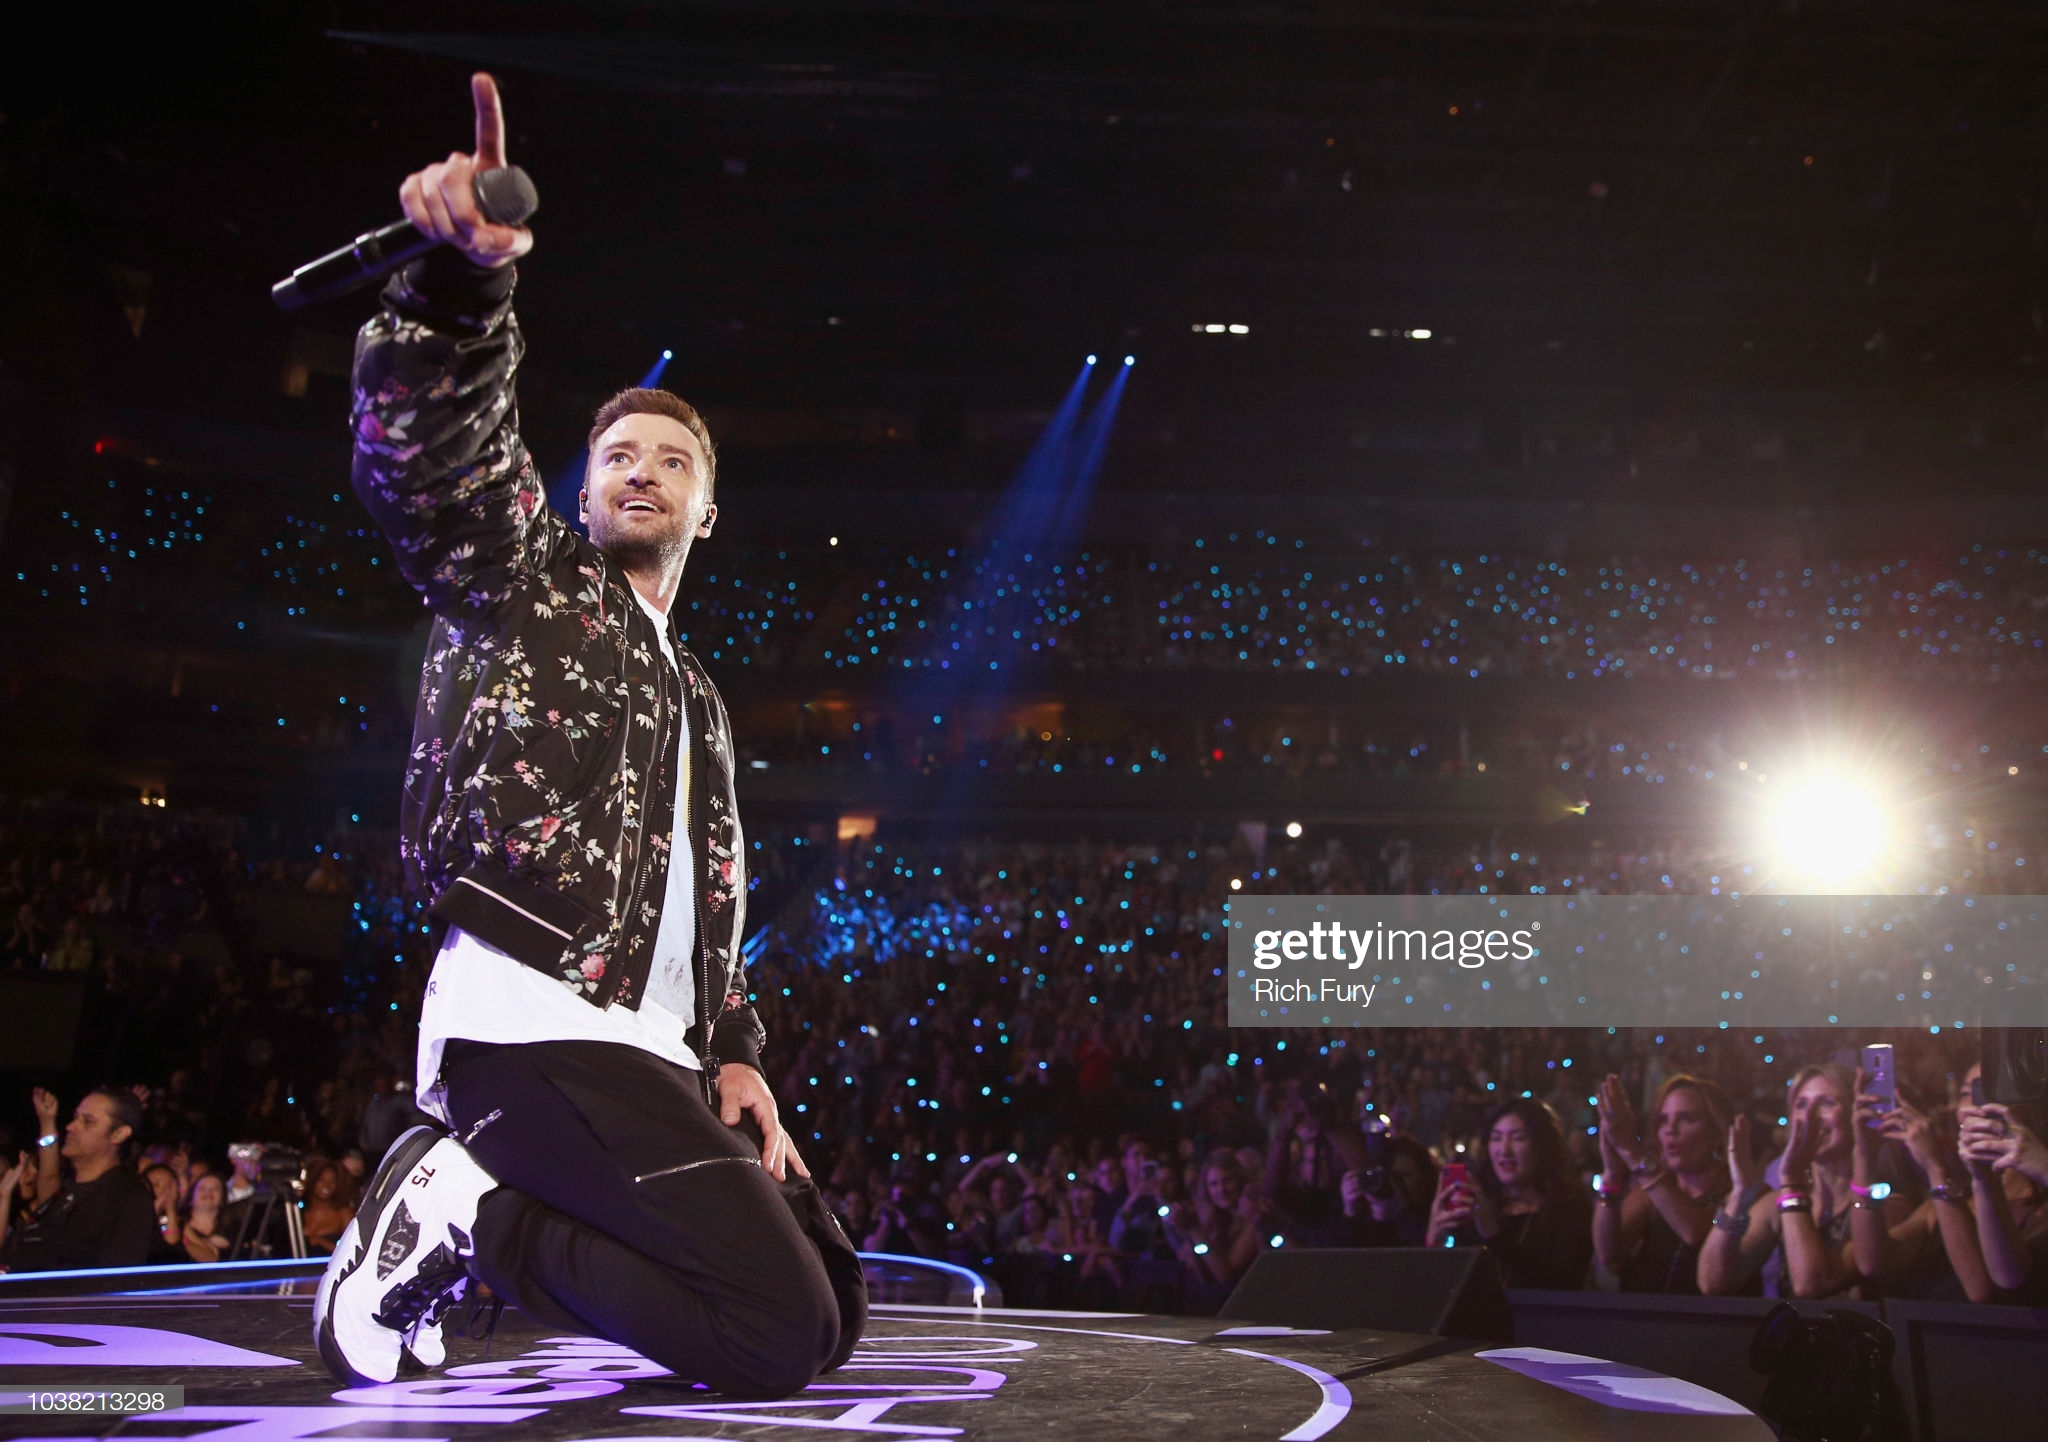 gettyimages-1038213298-2048x2048.jpg